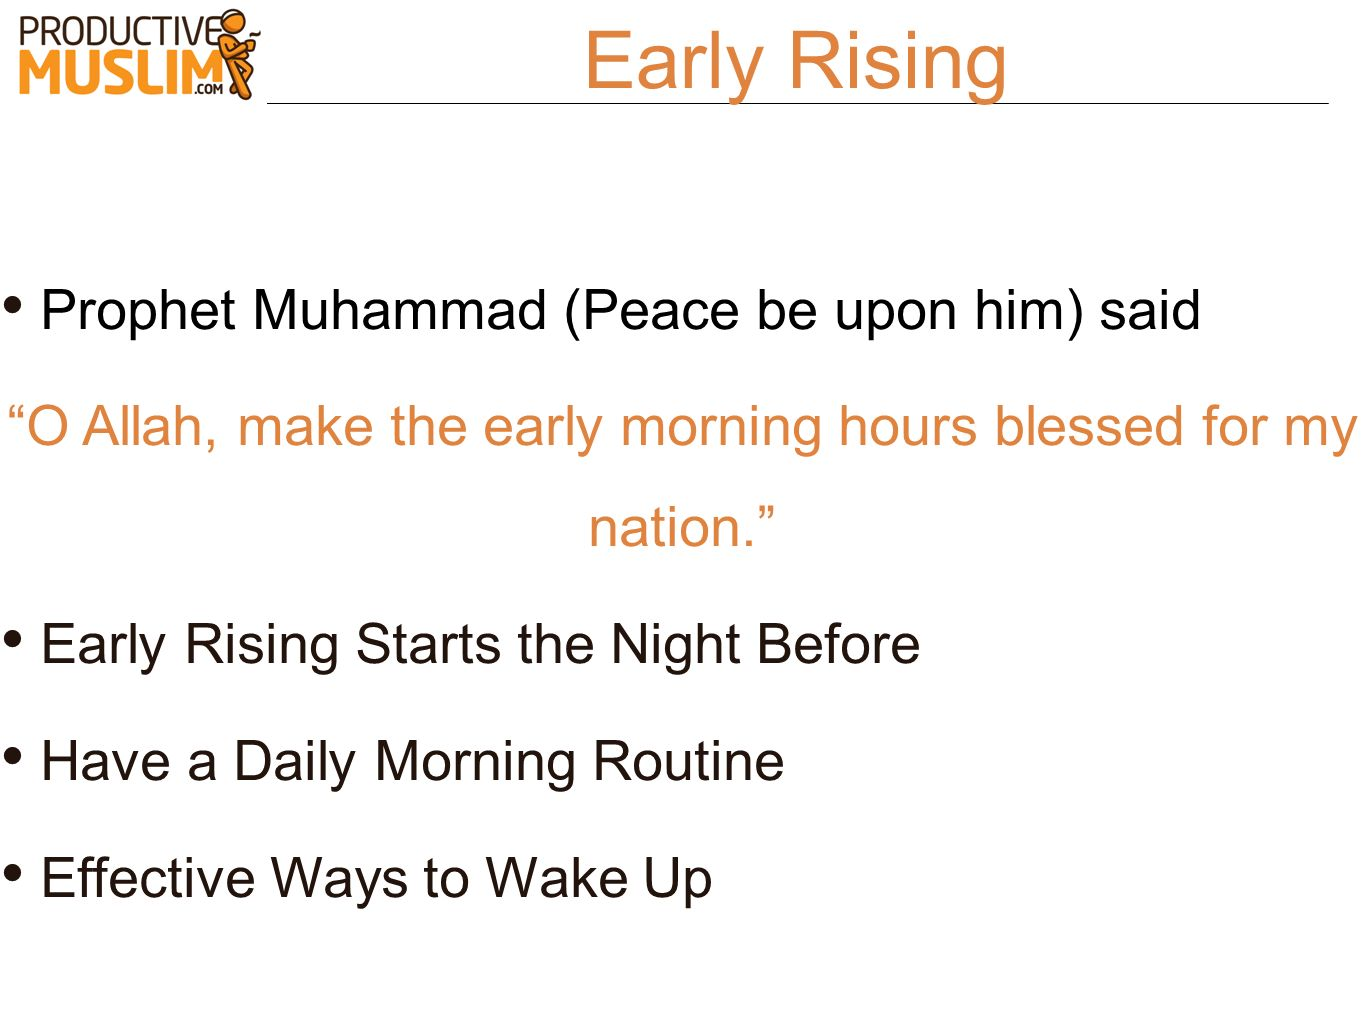 O Allah, make the early morning hours blessed for my nation.